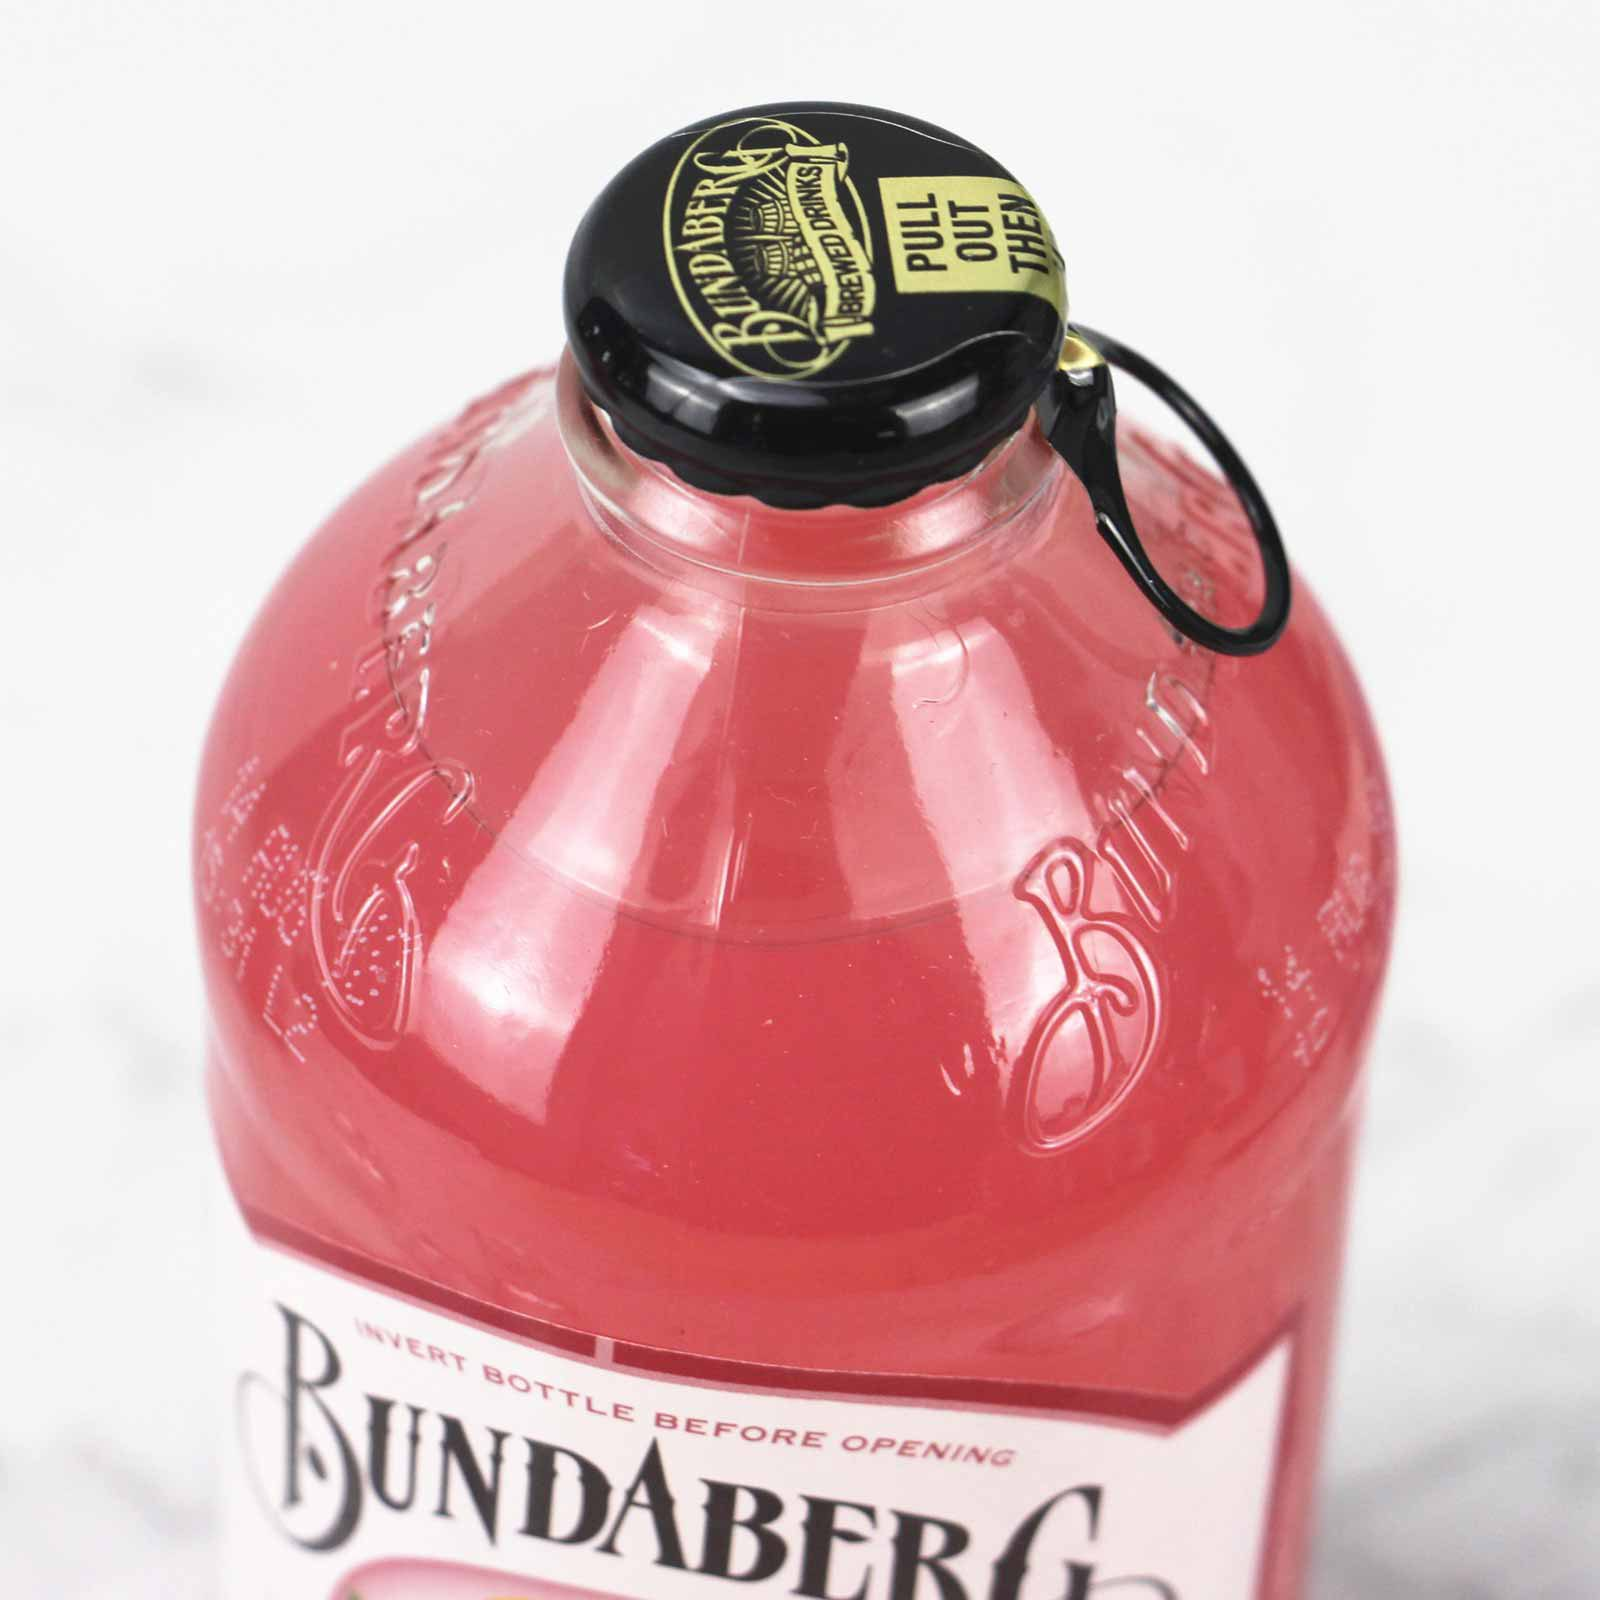 products-bundaberg-blood-orange-c